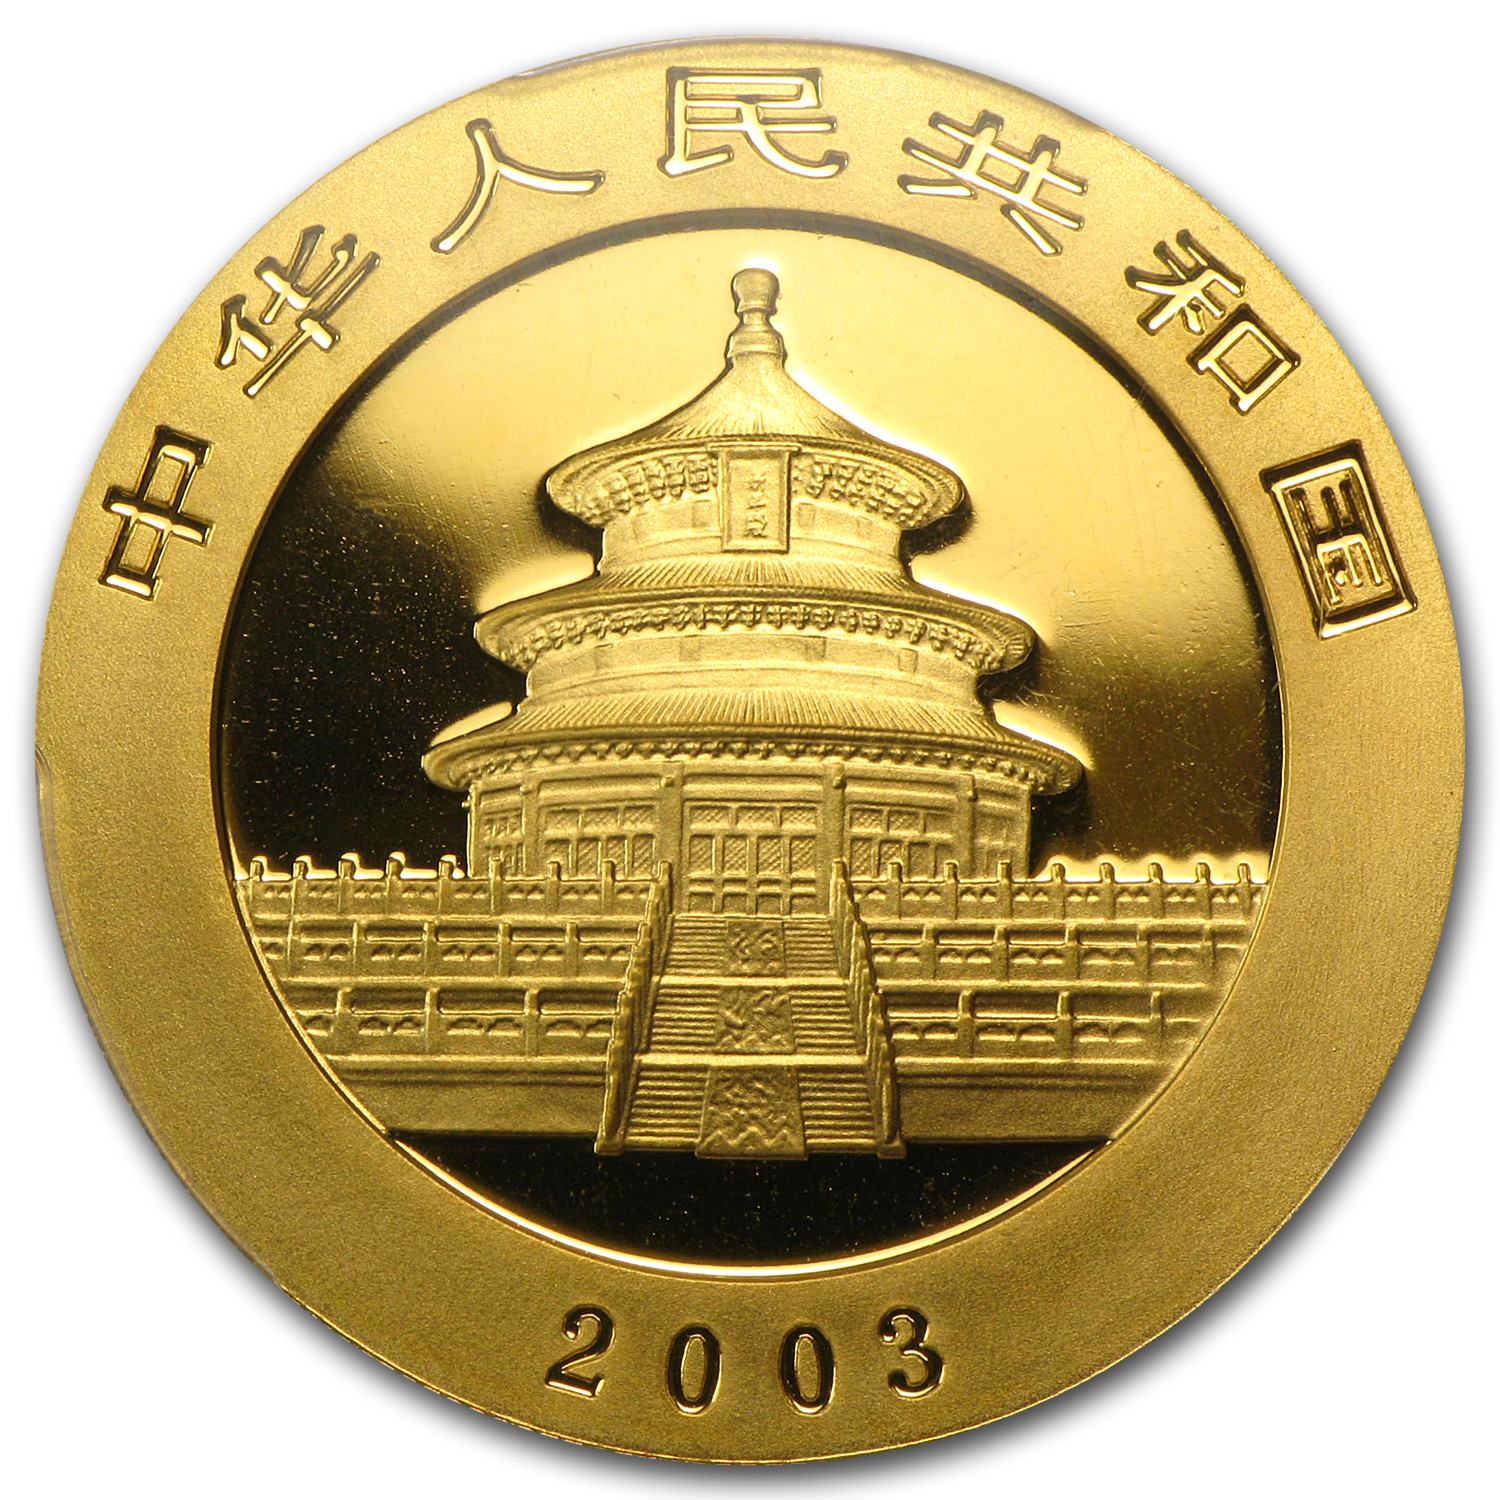 2003 China 1 oz Gold Panda MS-69 PCGS